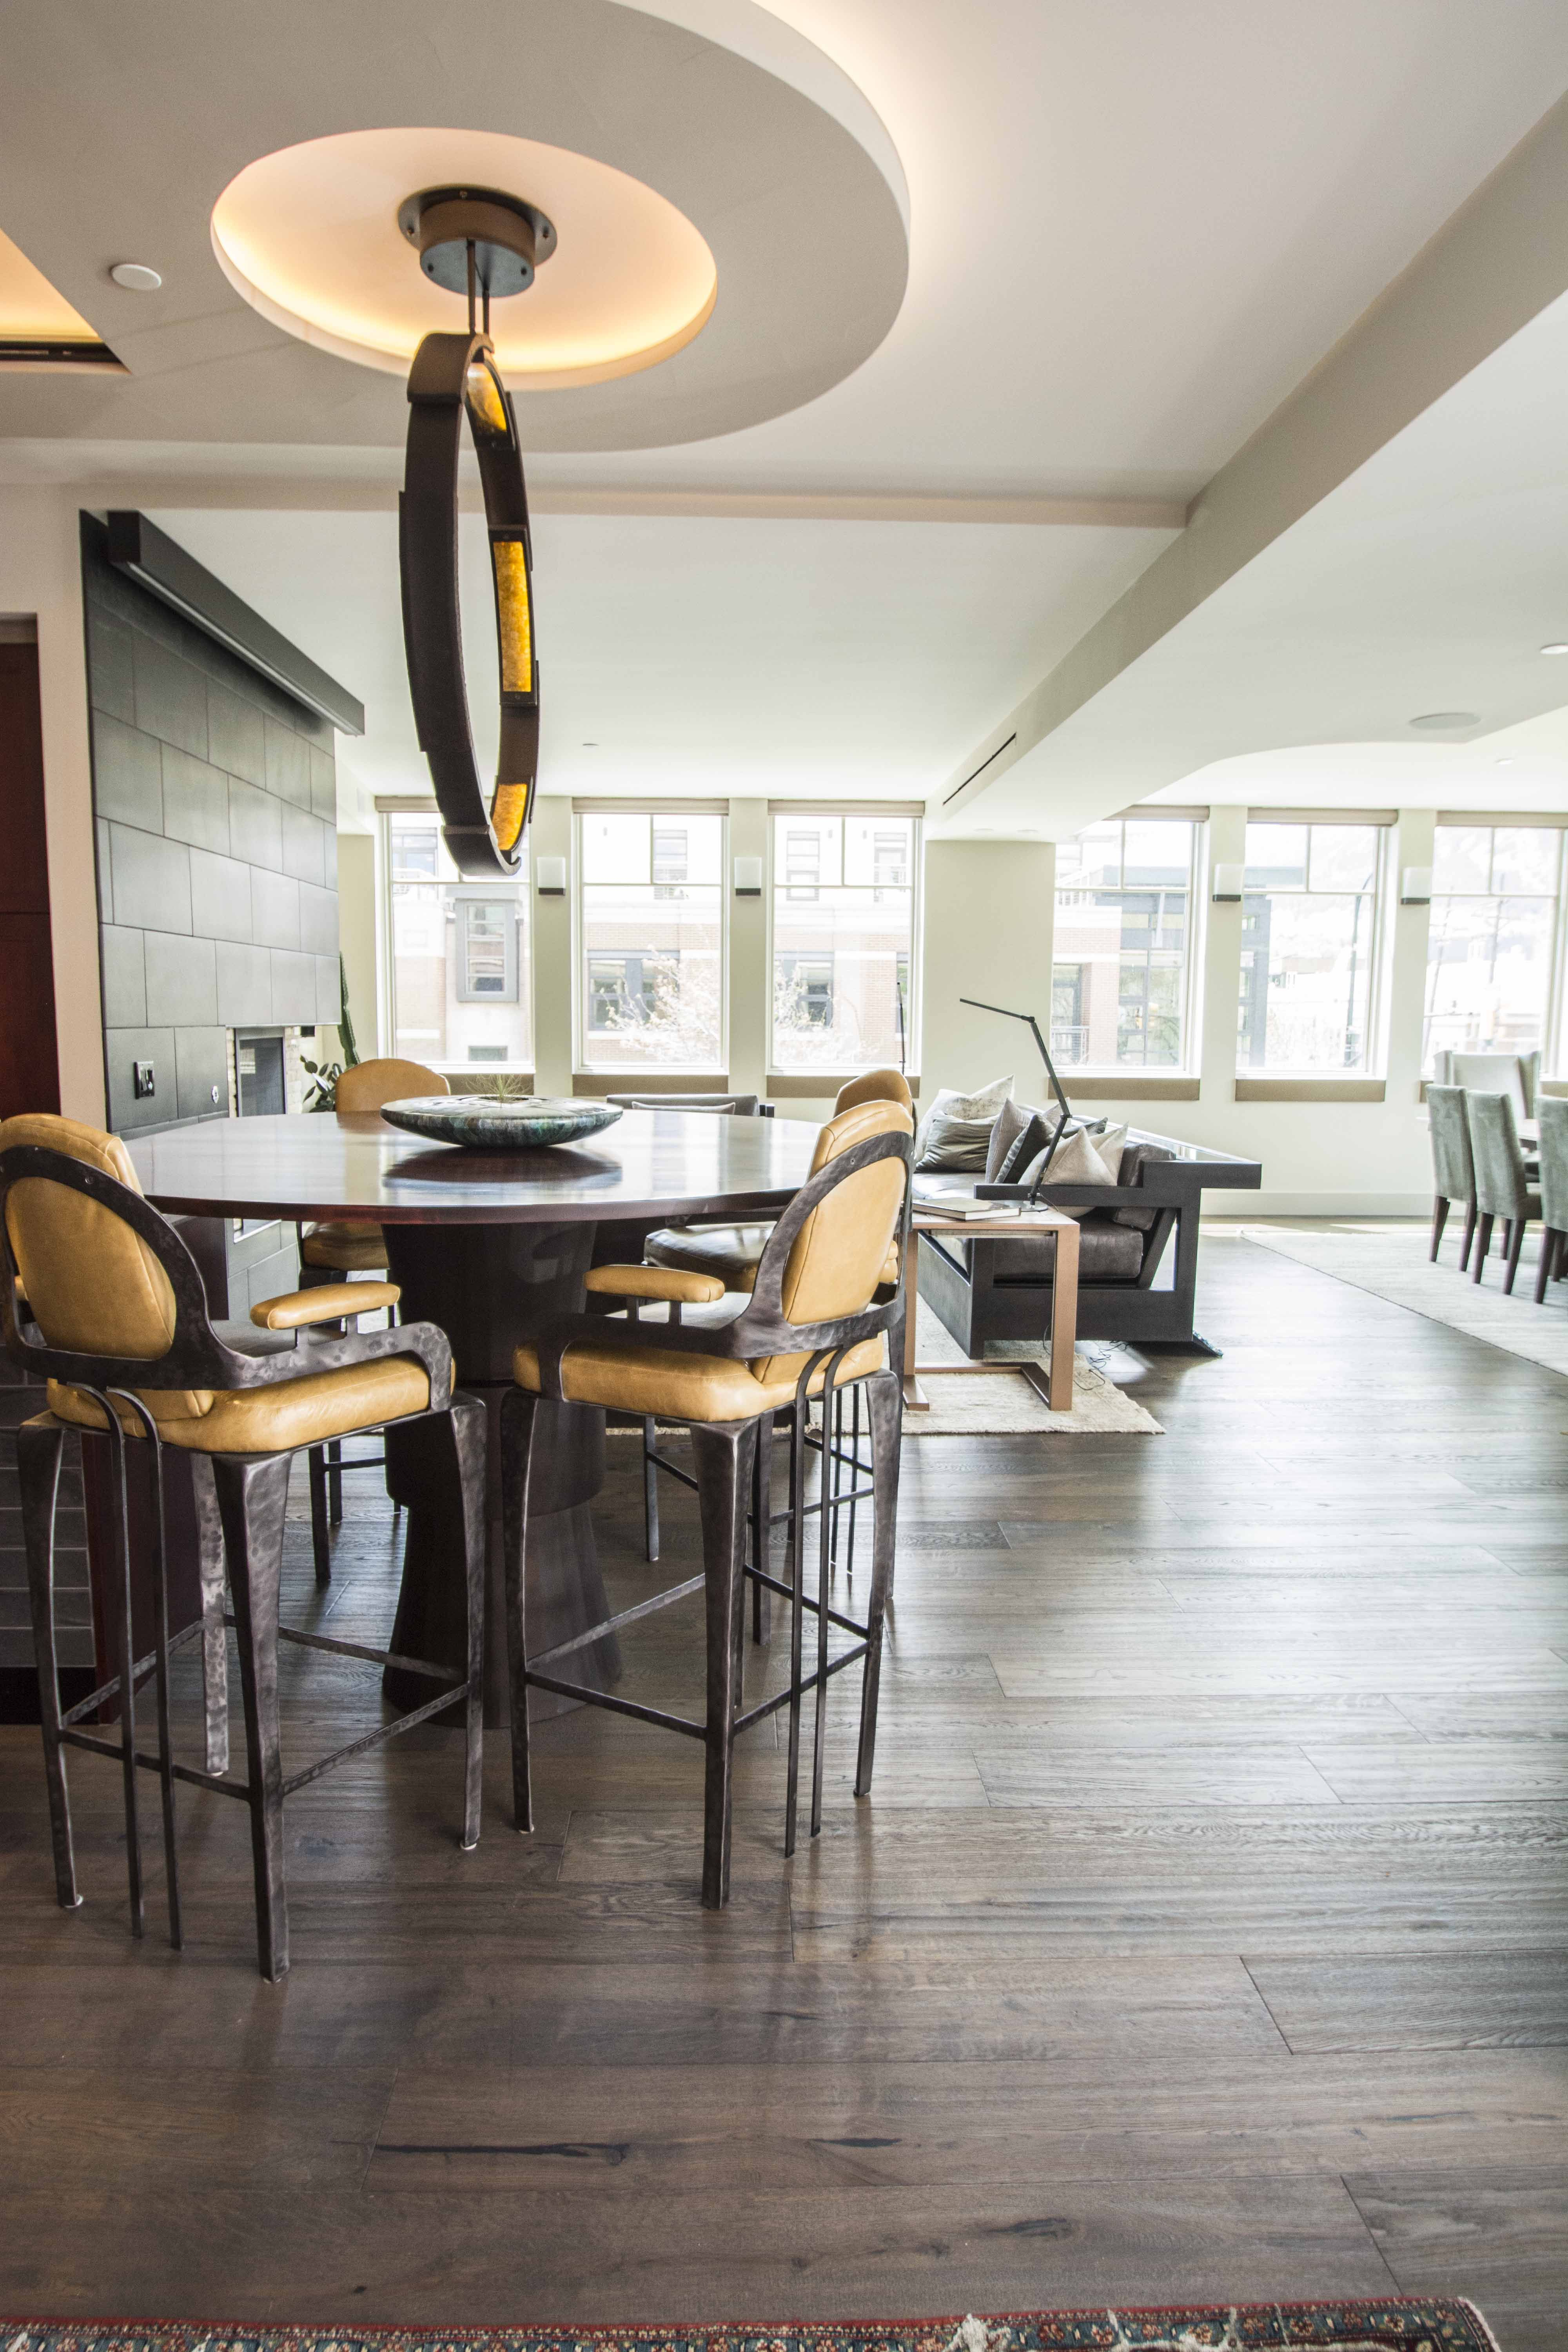 Kitchen Furniture Company: Custom Steel Kitchen Table & Chairs. By Vilona Furniture